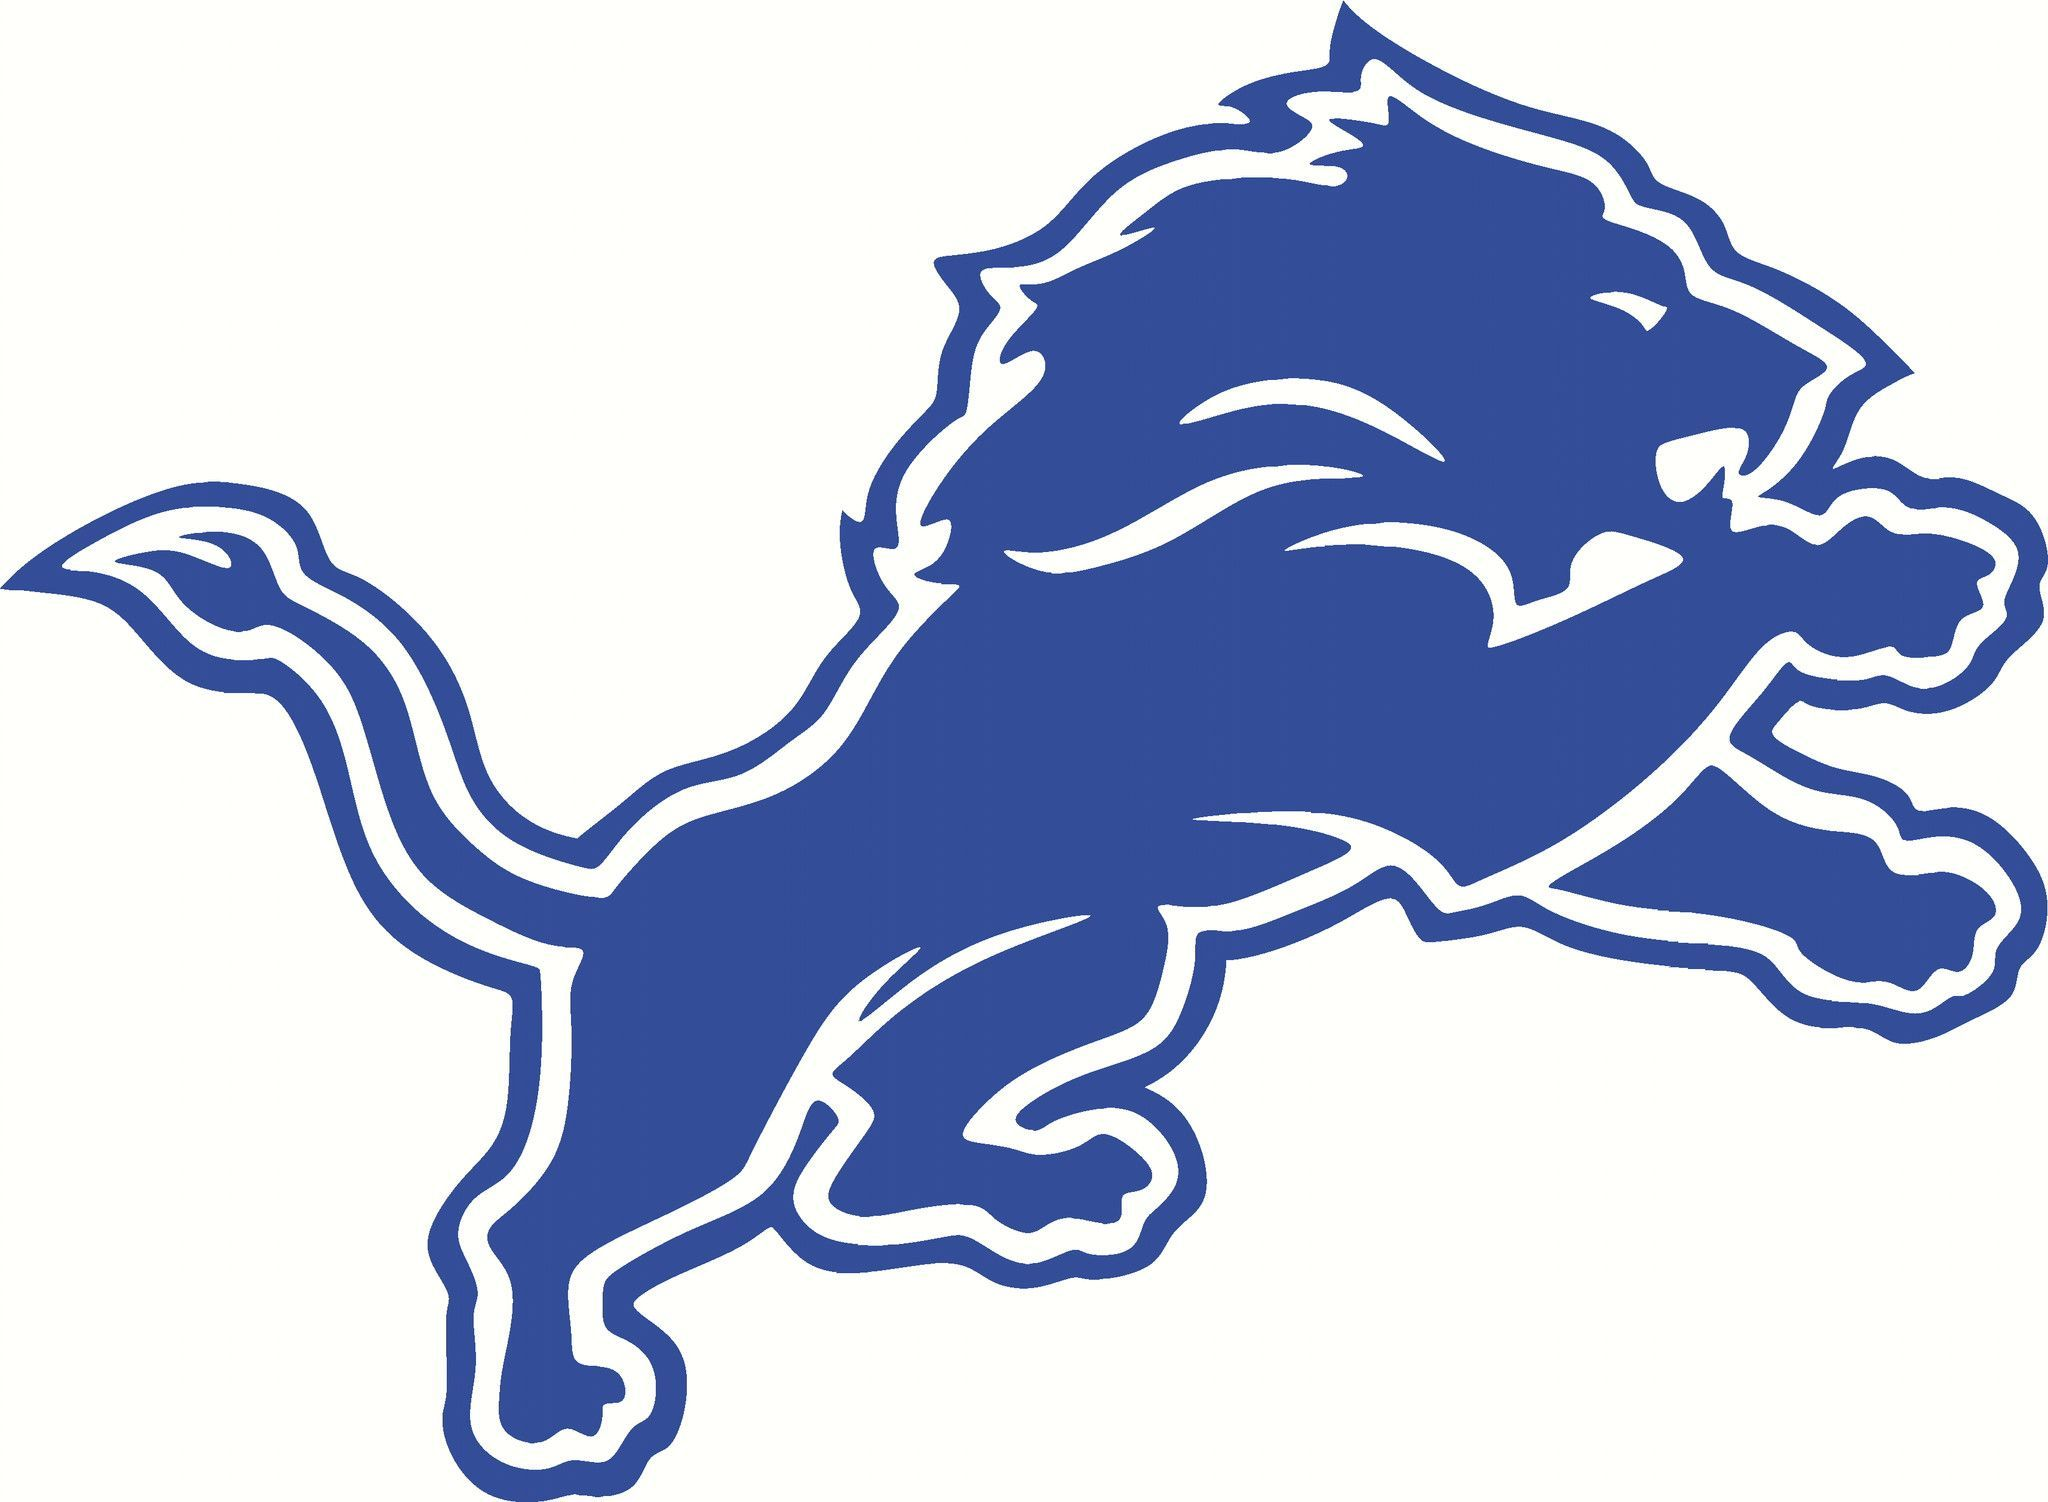 detroit lions logo vinyl cut out decal choose your color and size rh pinterest com Hand Grenade Symbol Army Hand Grenade Identification